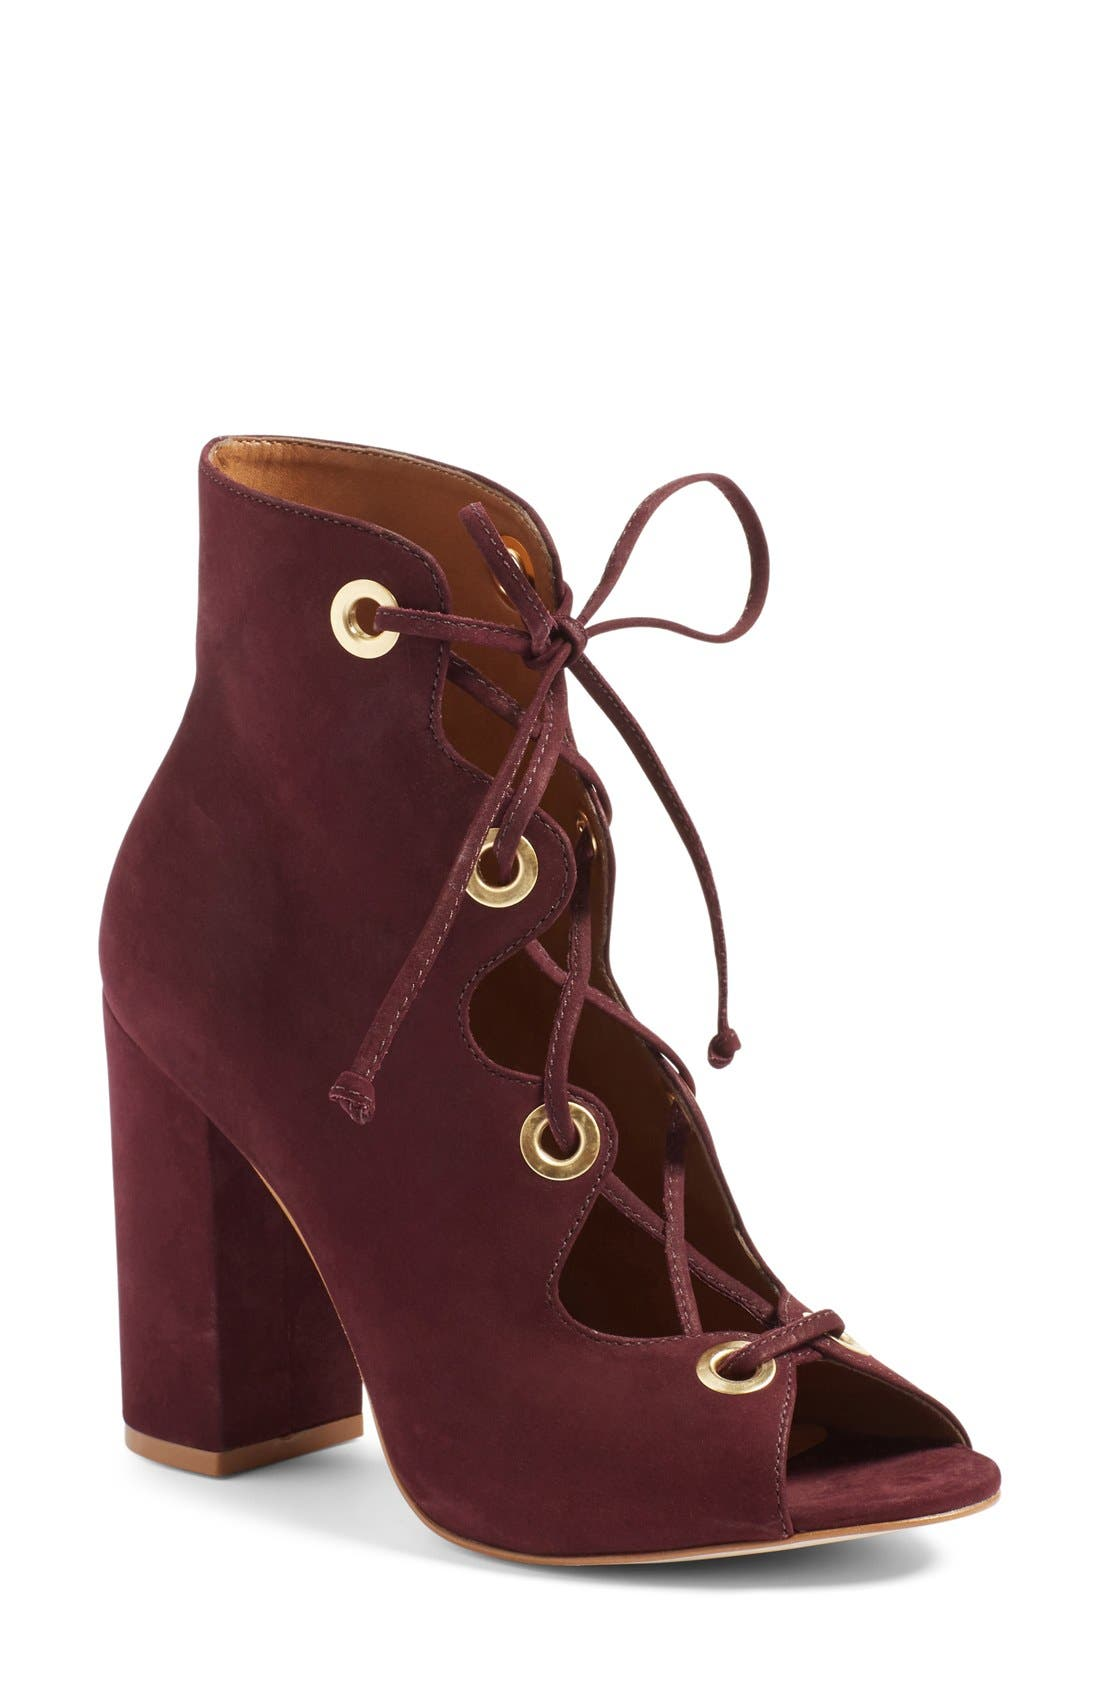 Main Image - Steve Madden 'Carusso' Lace-Up Peep Toe Bootie (Women)